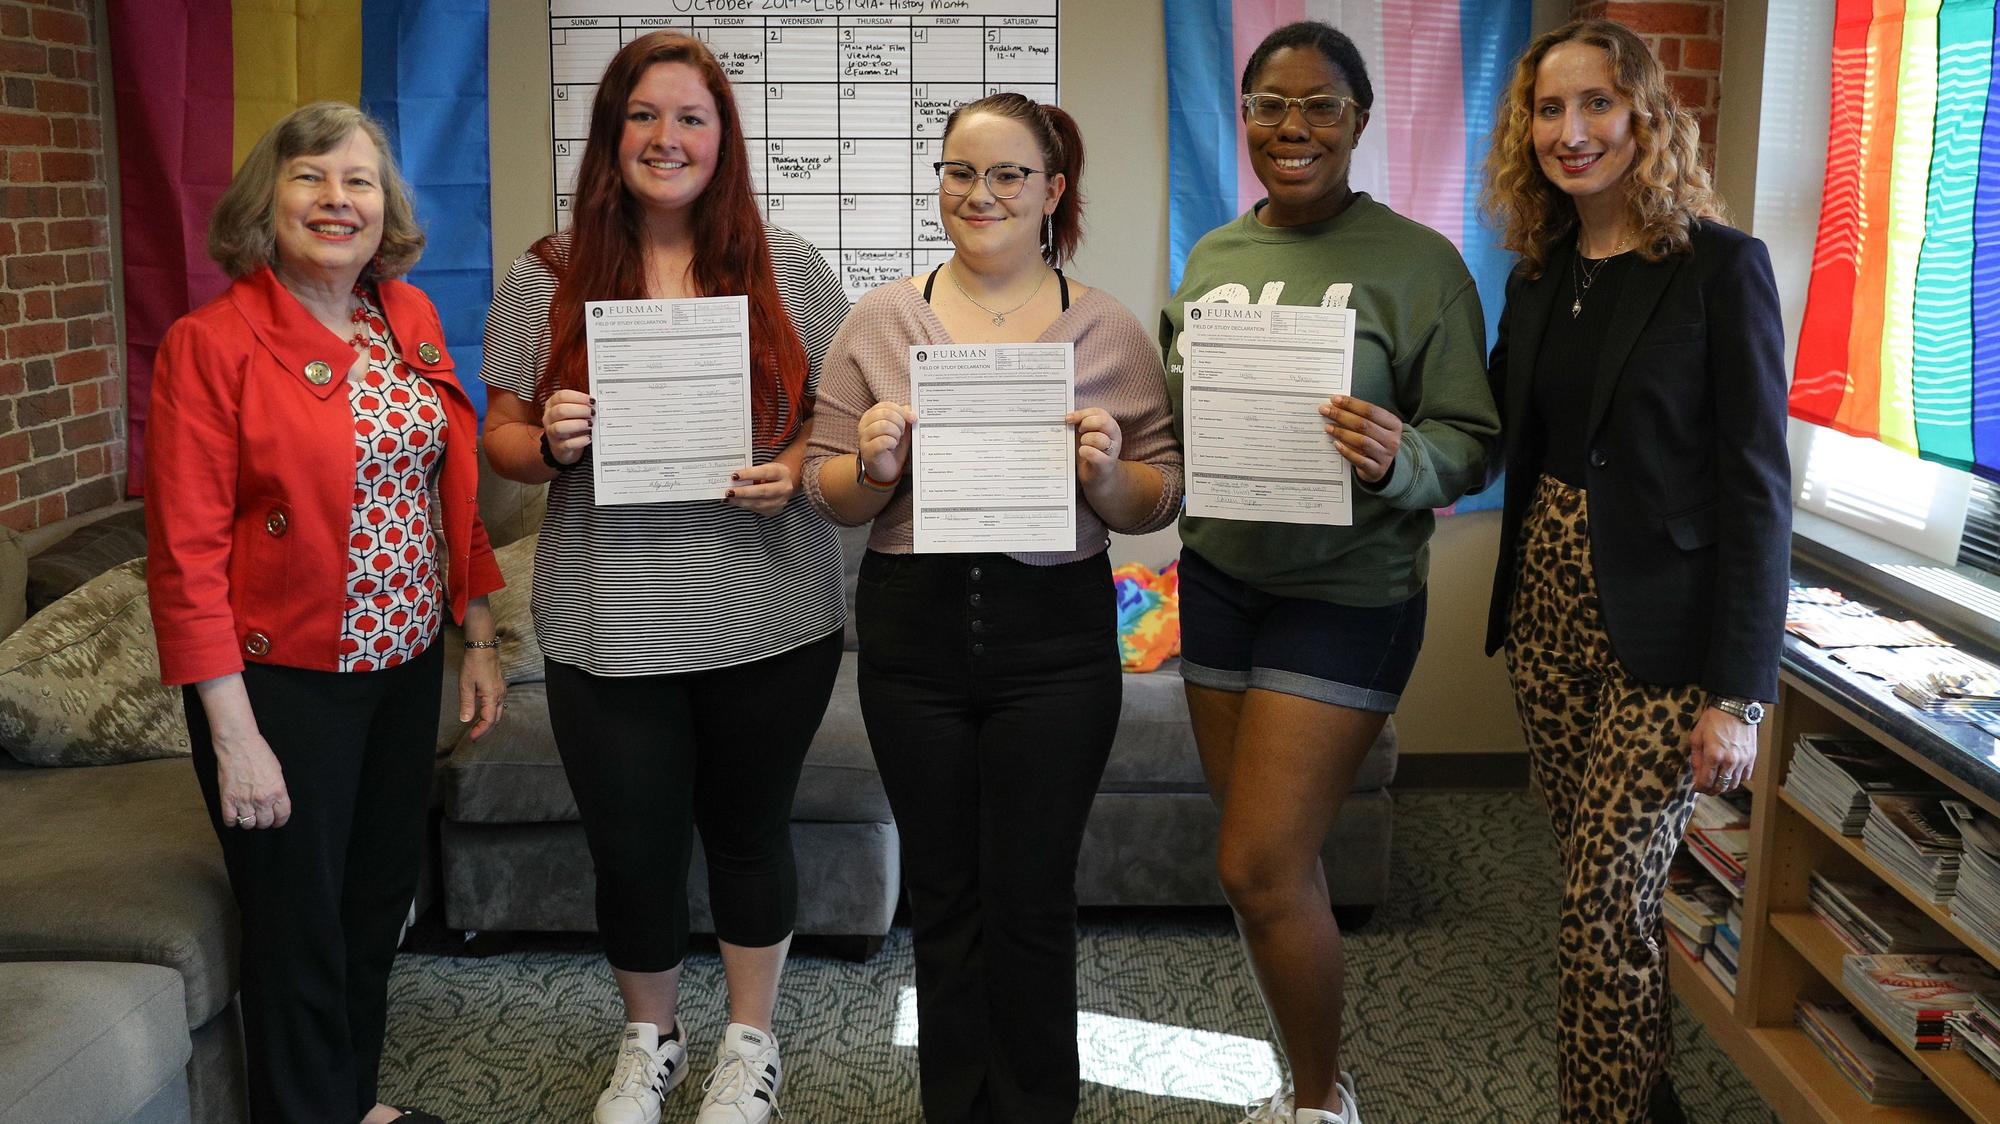 WGSS co-chairs Lynne Shackelford (far left) and Gretchen Braun (far right) join Riley Hughes '22, Miriam Stevens '22 and Queen Trapp '22 as they became the first majors in 2019.